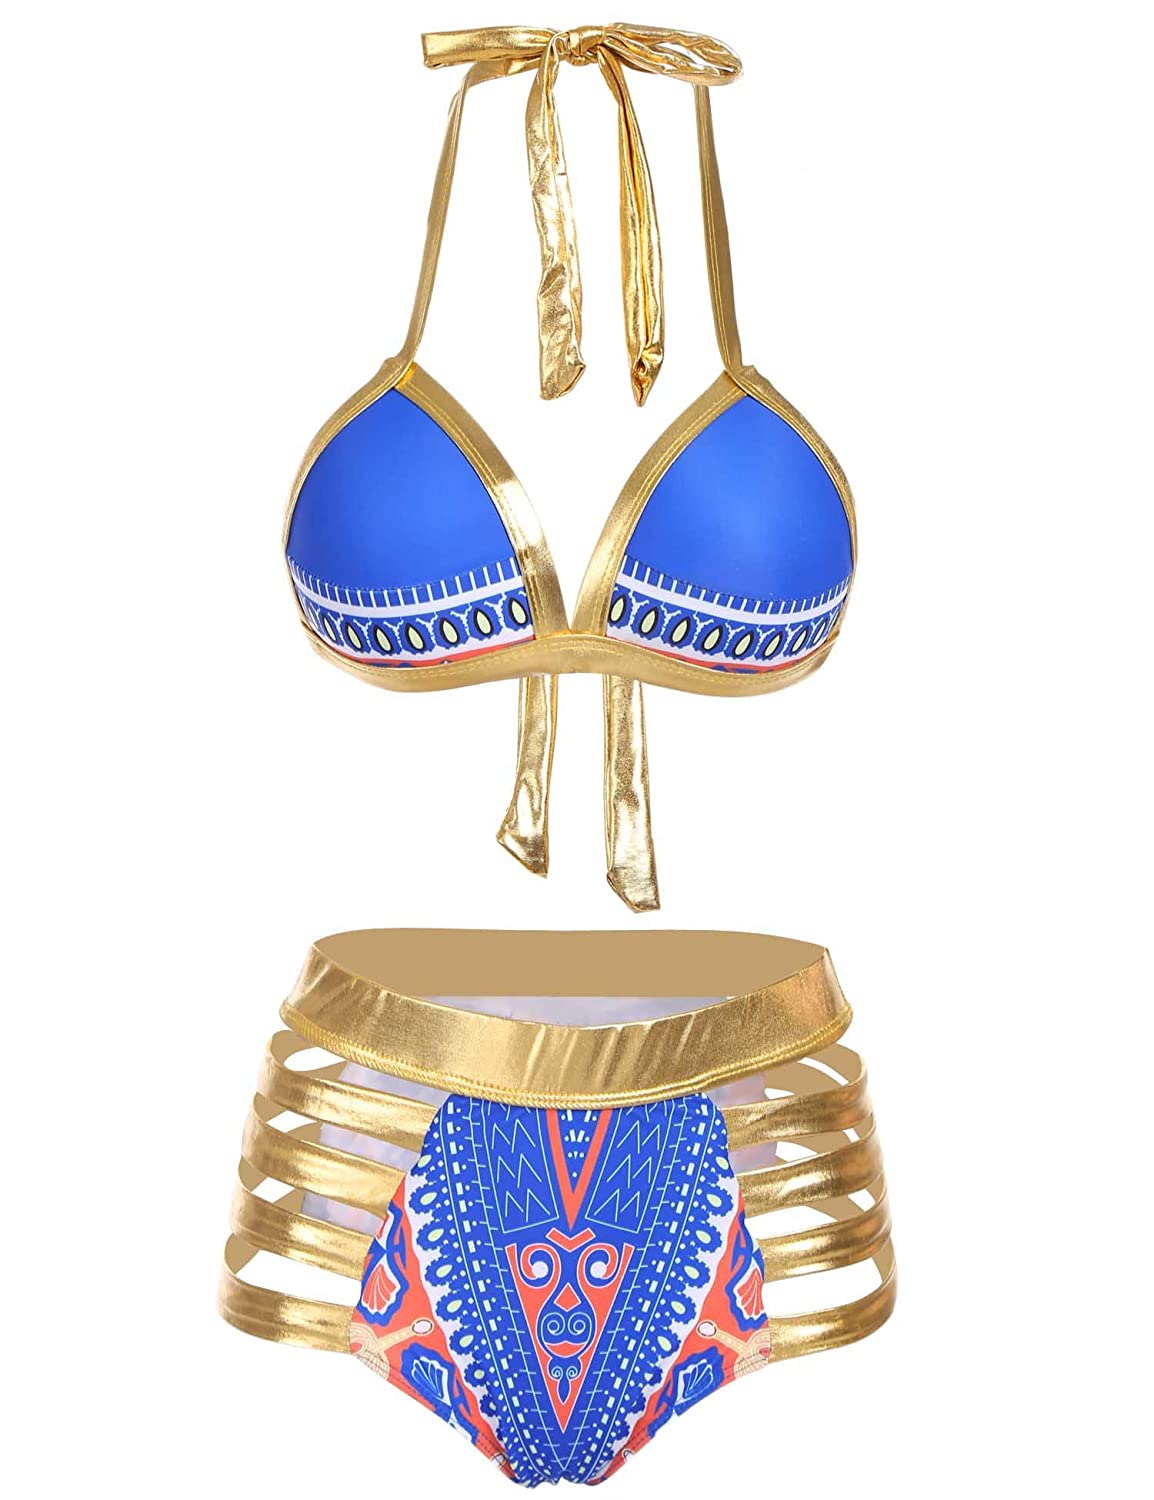 40aa4bef19066 ... Comfortable and do not feel hot when you wear. Triangle Bikini top Push  Up cups offer added comfort and appeal,Adjustable Strap Fashion ...